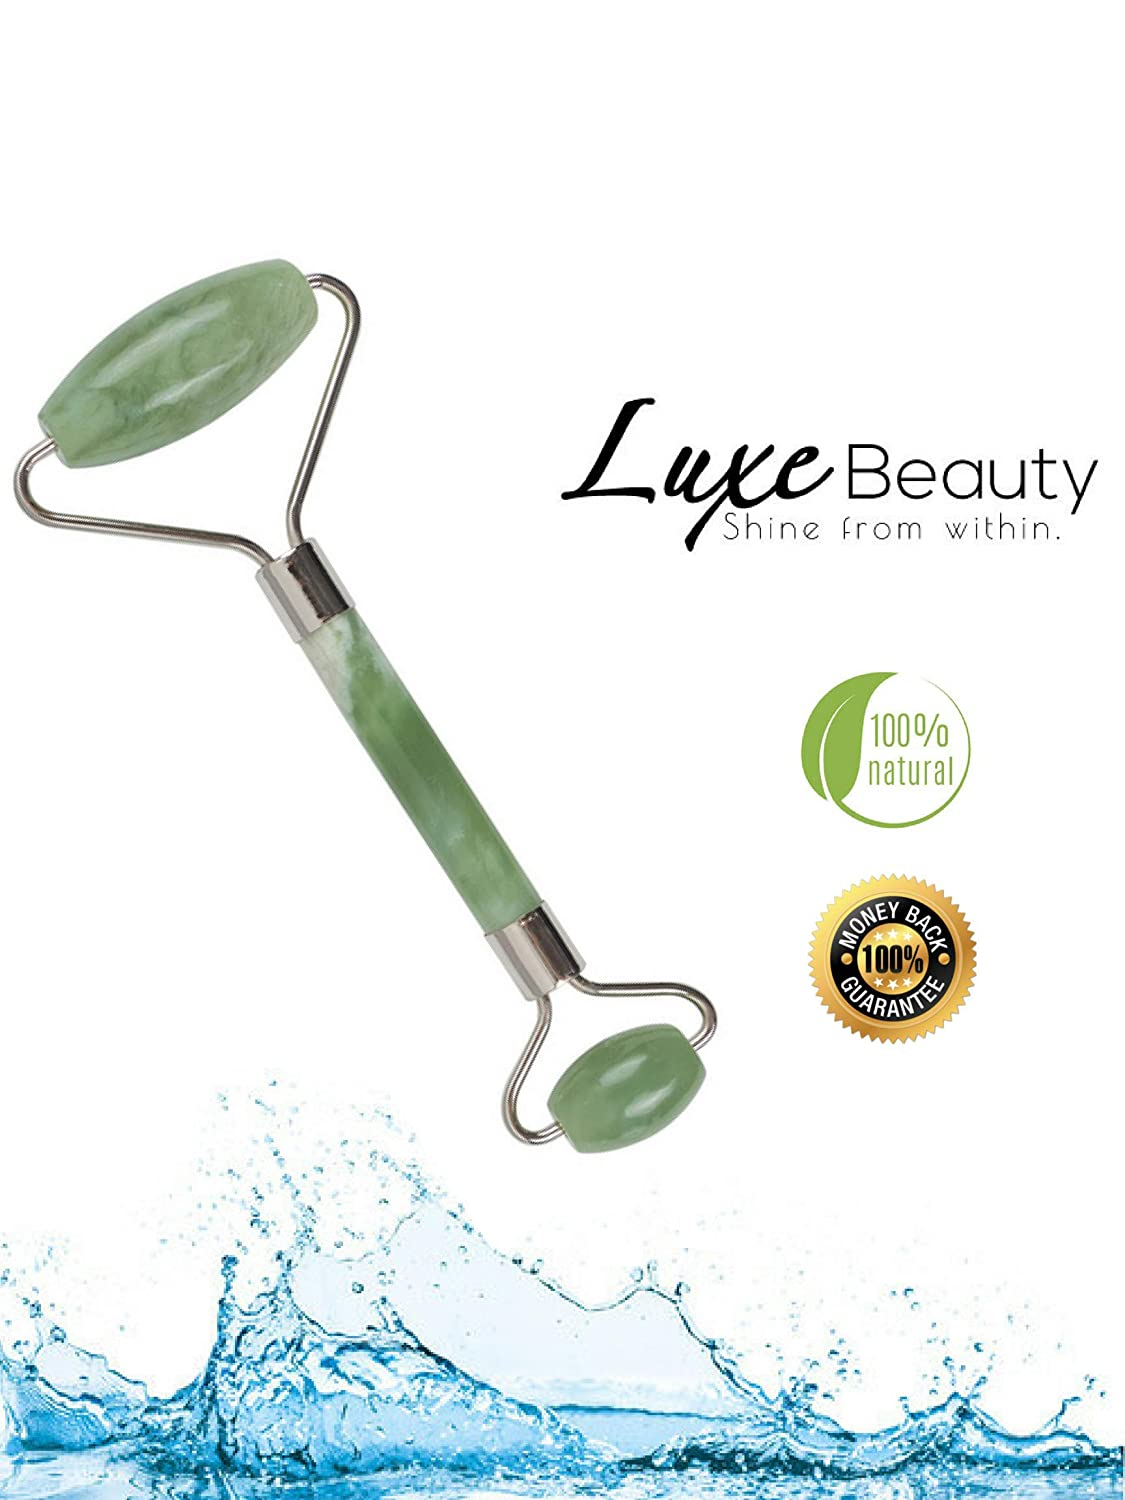 Premium Anti-Aging Jade Roller Face and Neck Massage Therapy | 100% Authentic All Natural Himalayan Jade Stone - By LuxeBeauty